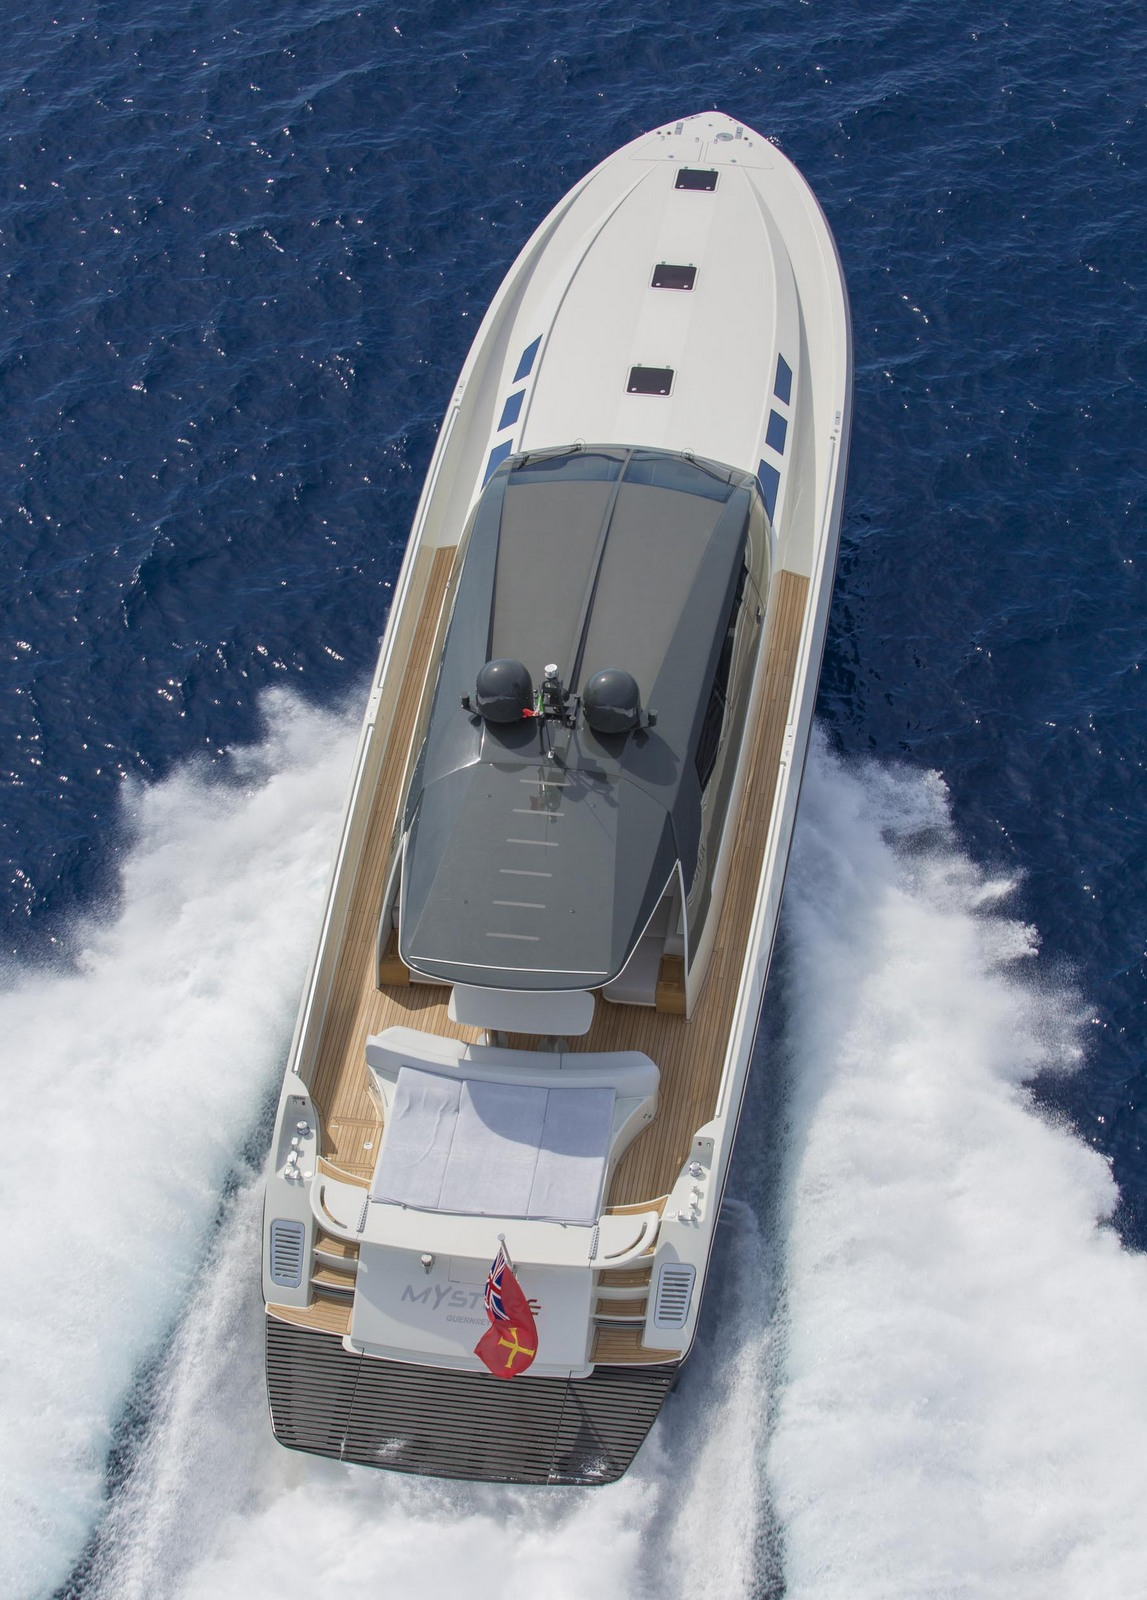 aerial-view-of-the-otam-millennium-80ht-yacht-mystere